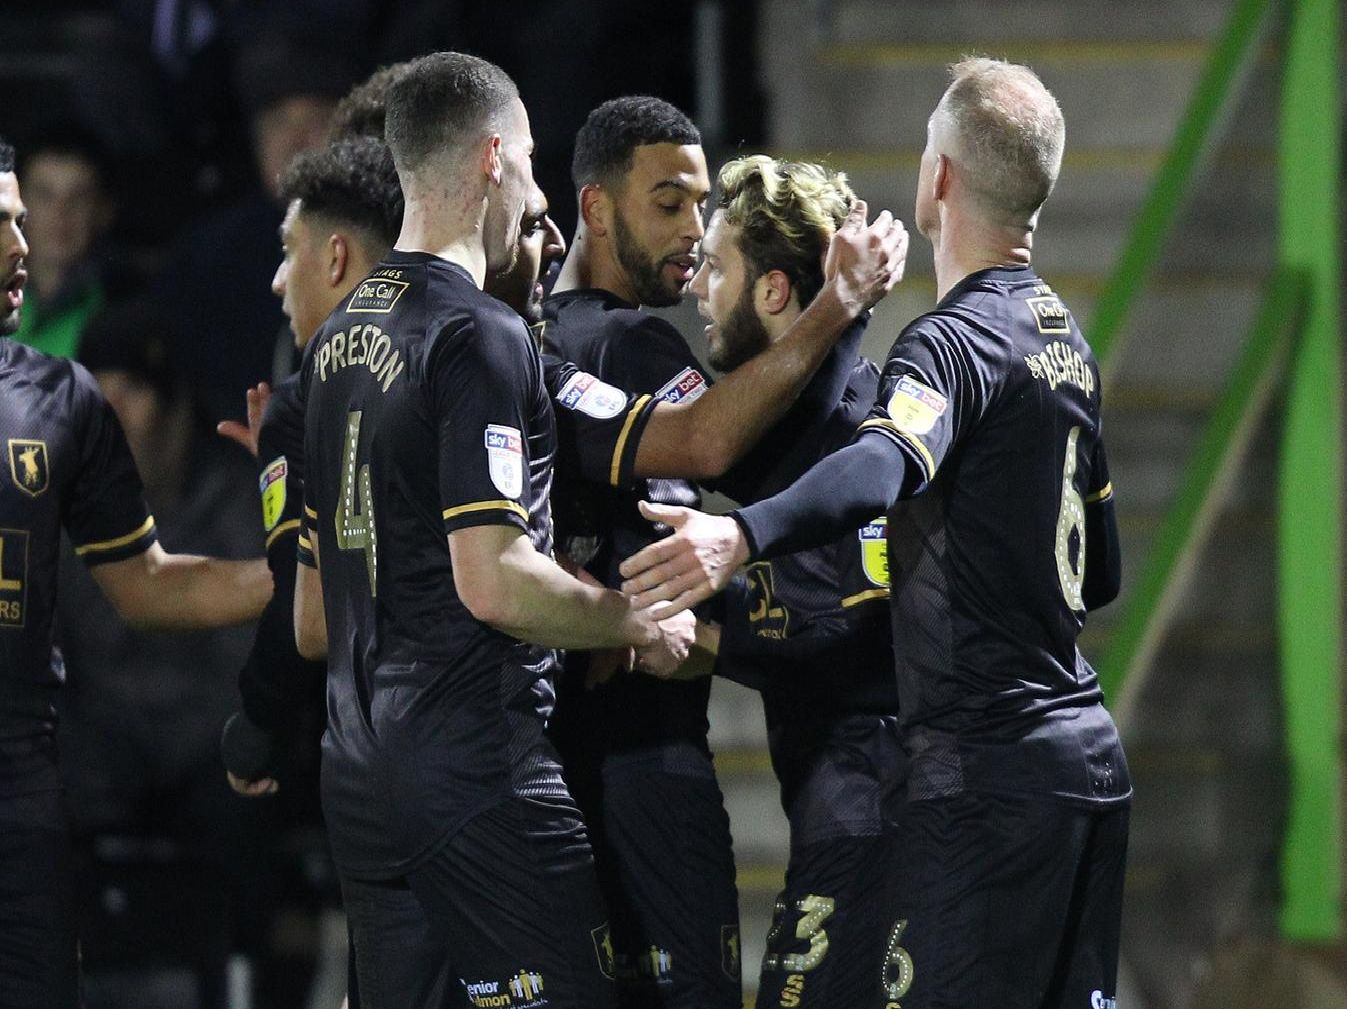 Forest Green Rovers 1 Mansfield Town 1